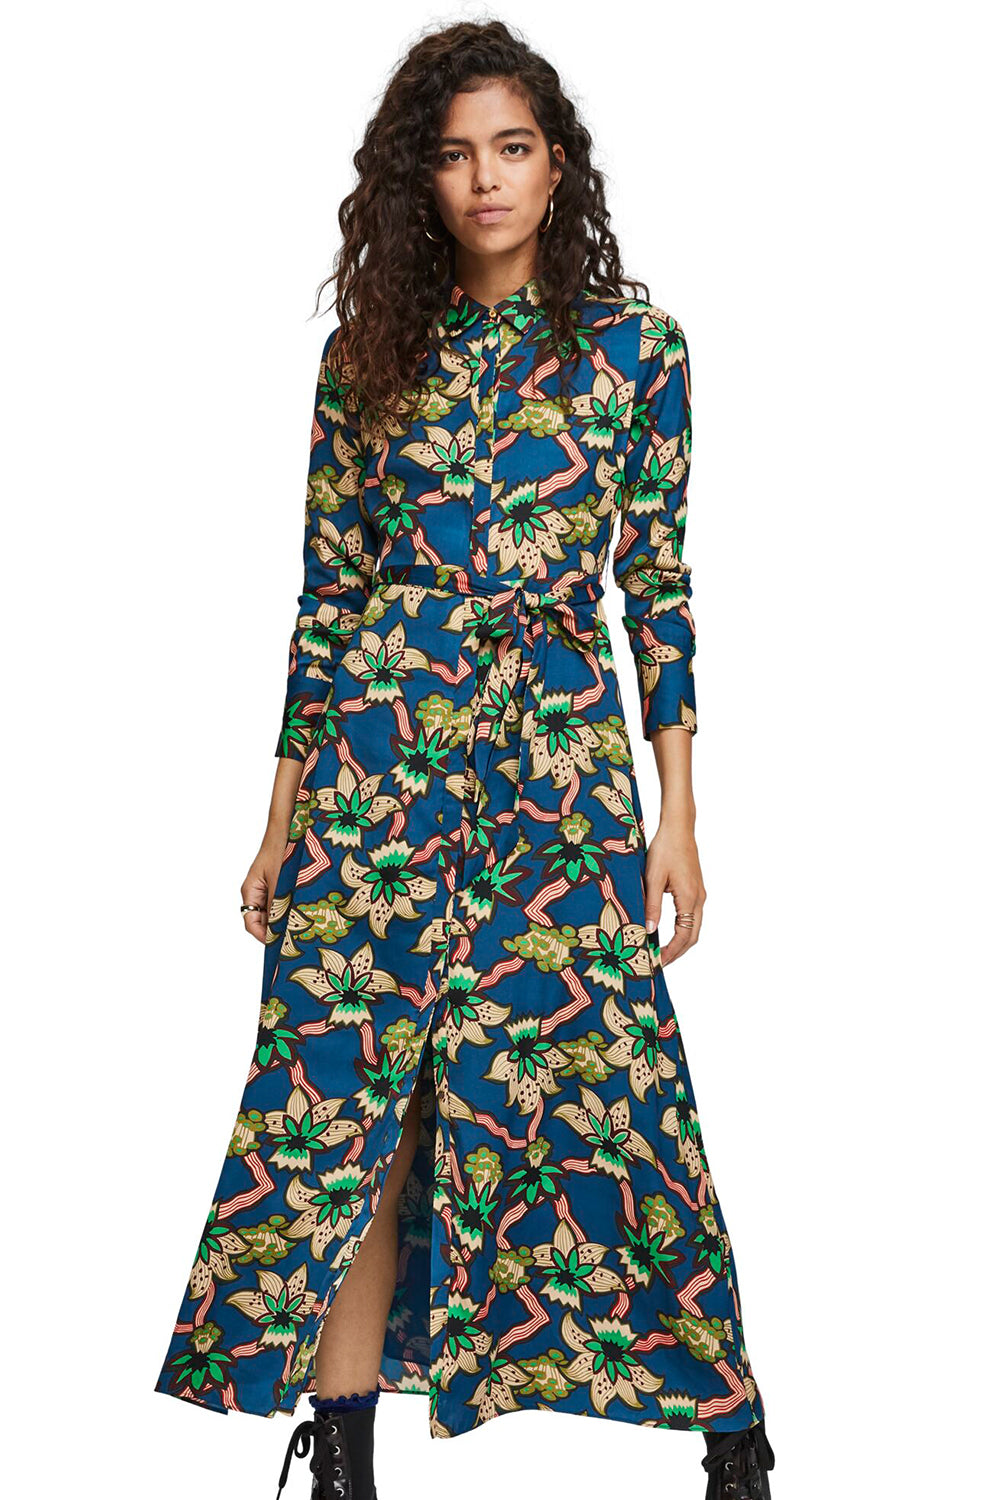 Maison Scotch / Belted Maxi Dress / Combo